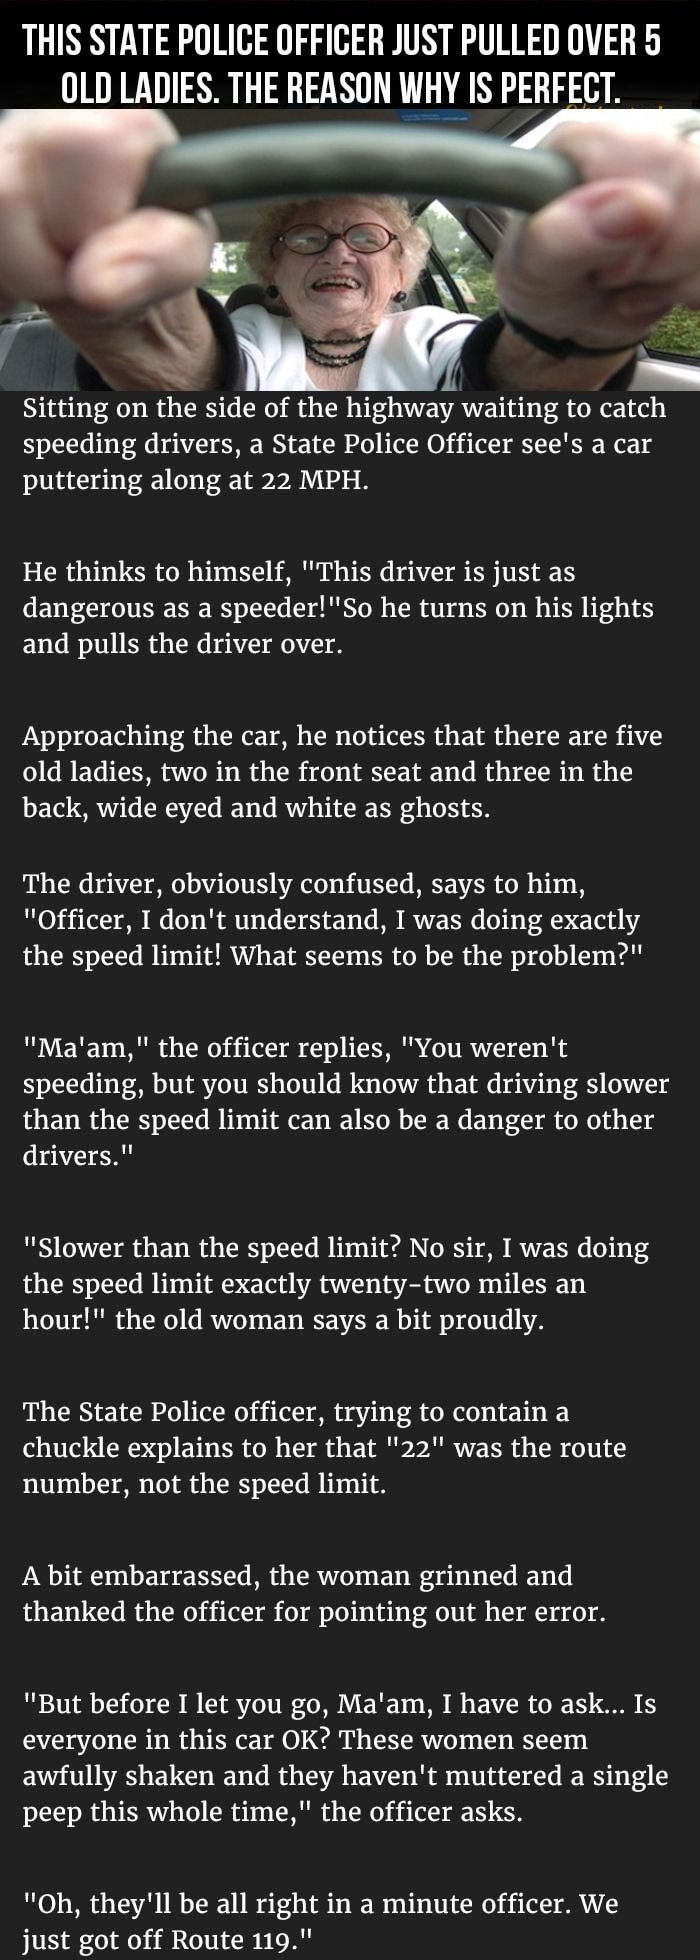 LOL - This State Officer Pulled Over 5 Old Ladies The Reason Why Is Perfect funny quotes quote jokes story lol funny quote funny quotes funny sayings joke humor stories